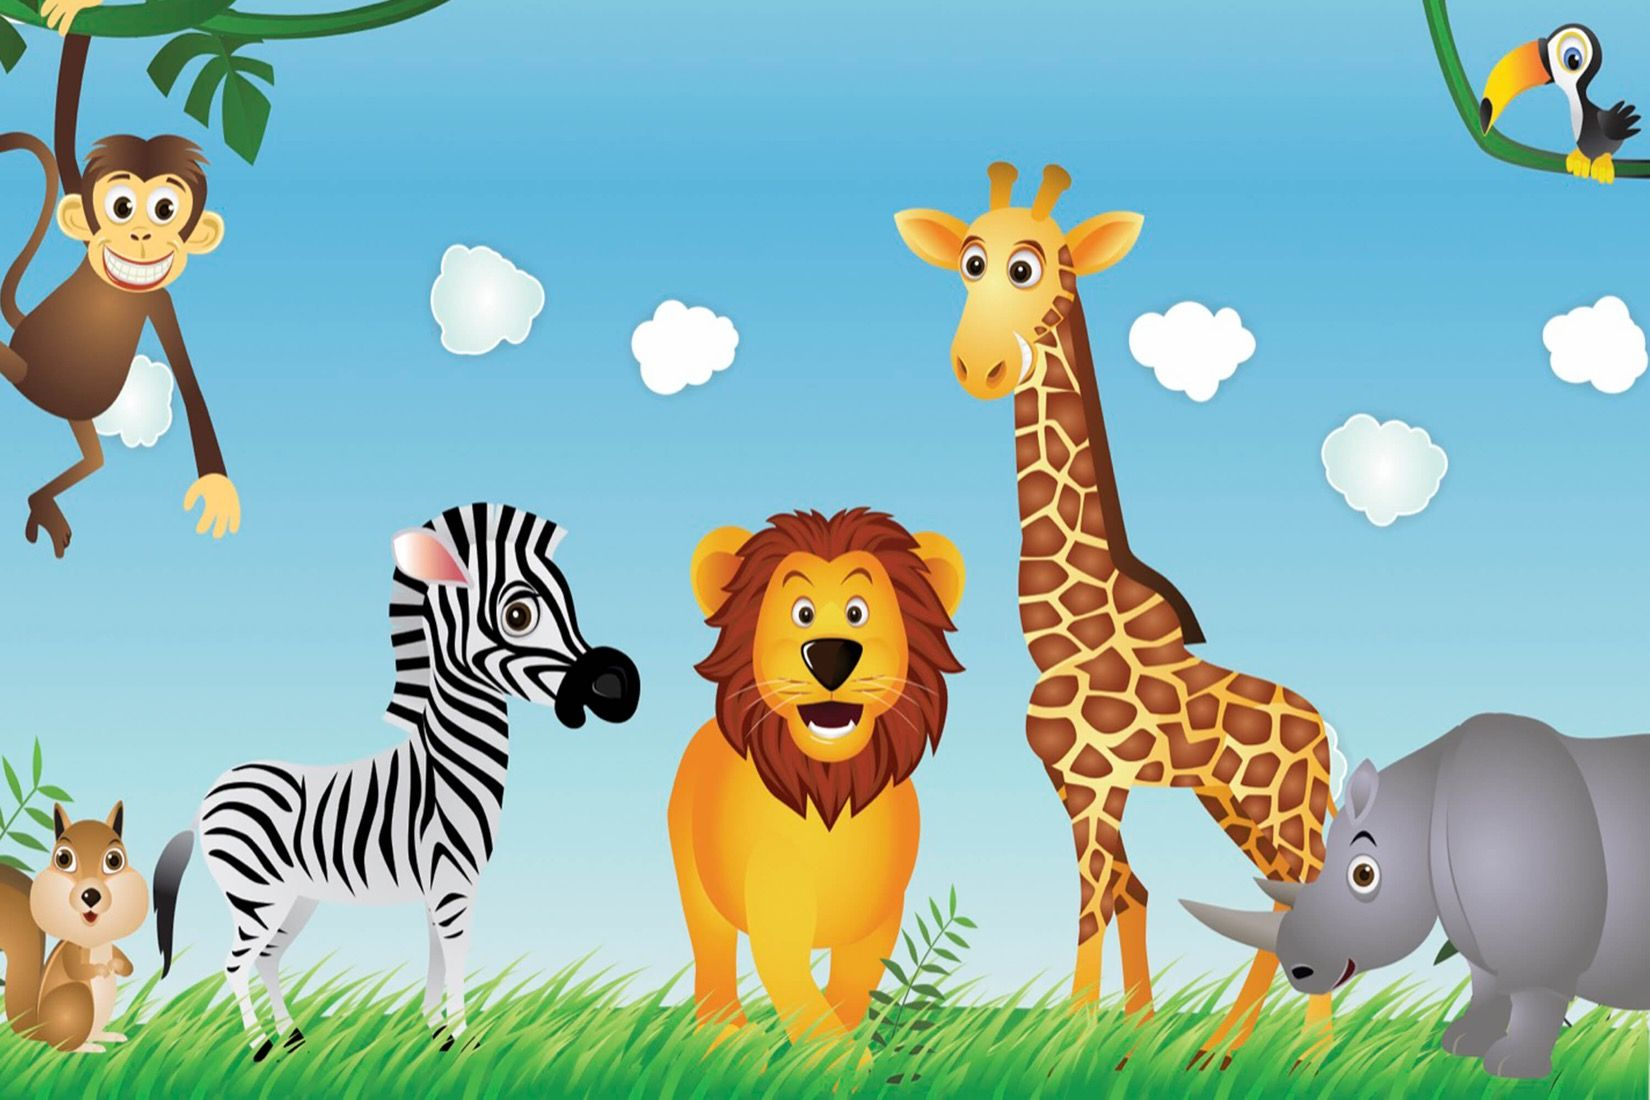 Cute Animals Kids Wallpaper Mural Custom Made To Suit Your Wall Size By The Uk S No 1 For Wall Murals Kids Wallpaper Animal Pictures For Kids Animal Wallpaper